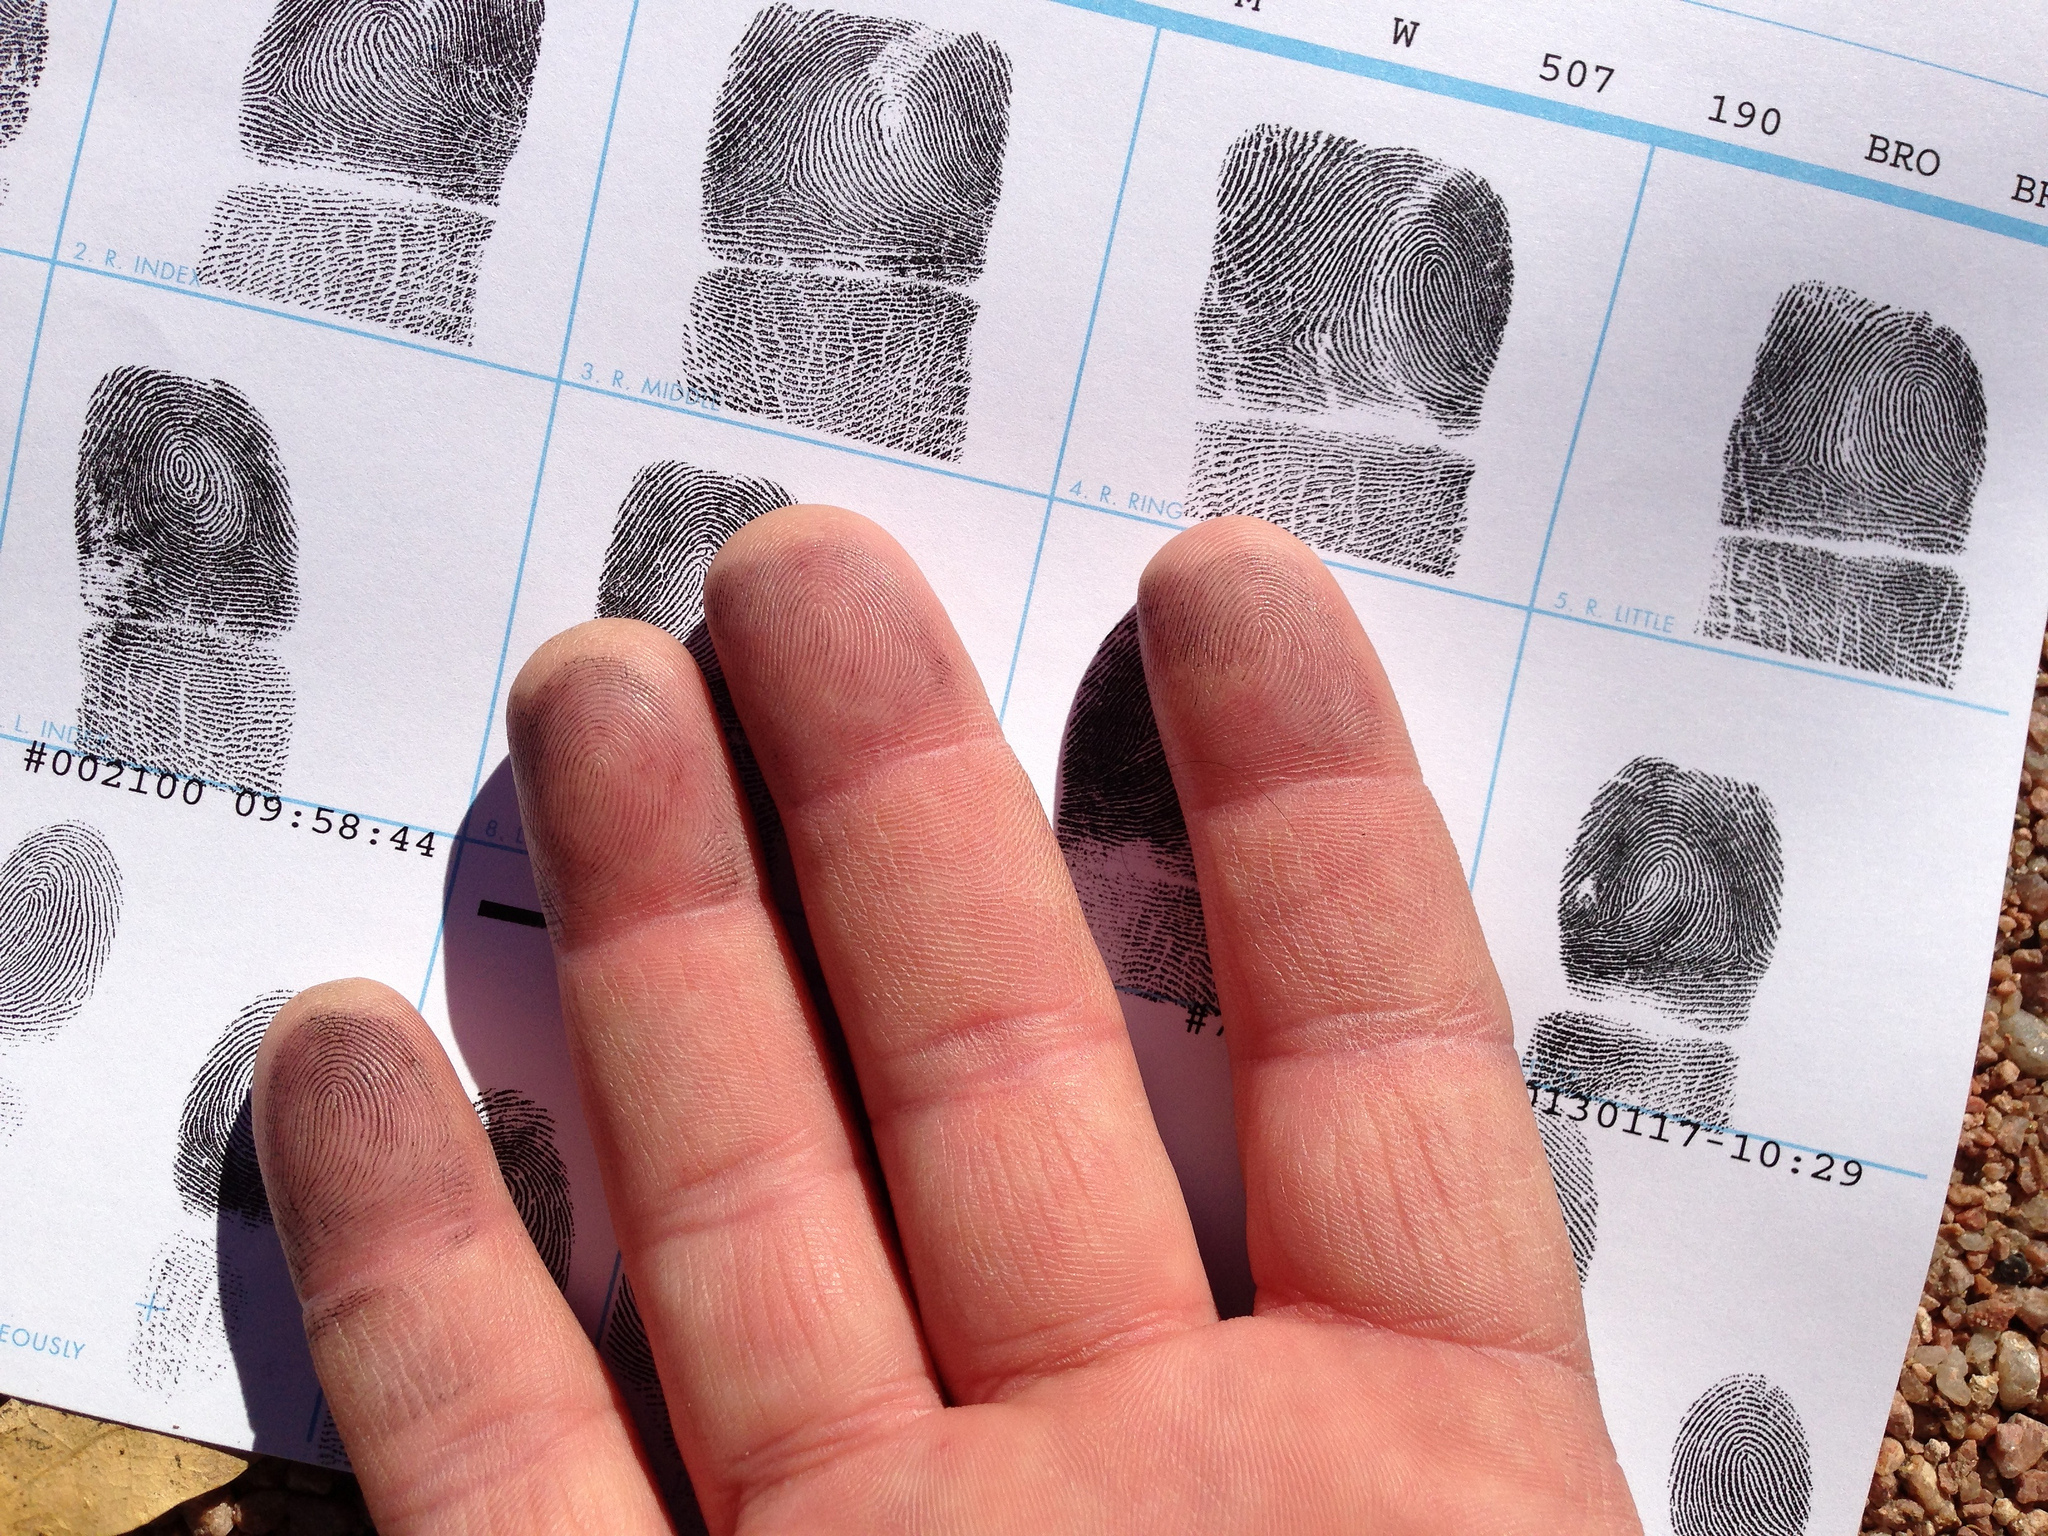 Image of a hand overlying a fingerprint sheet. Black ink is still visible on the fingers.